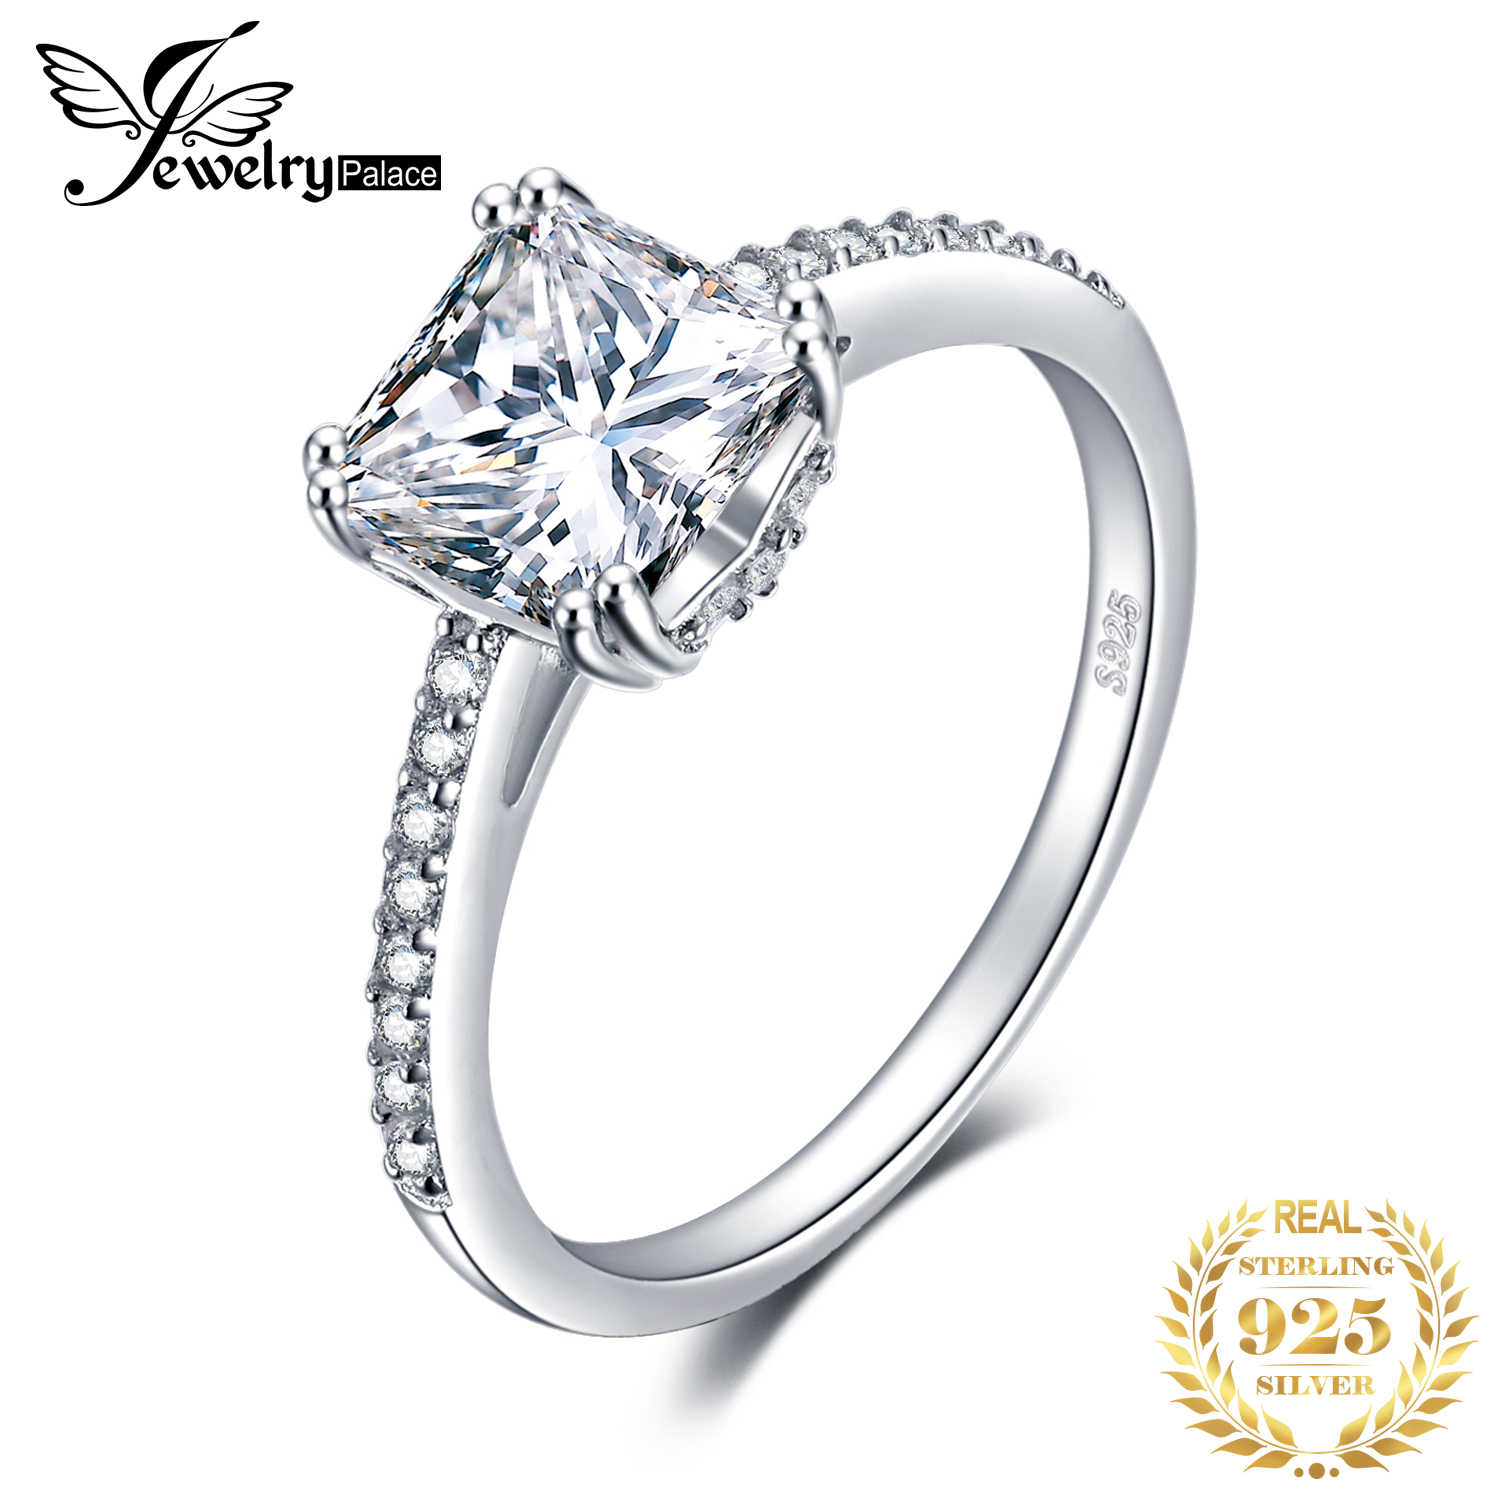 JewelryPalace Lovely Engagement Solitaire Ring Genuine 925 Sterling Silver Rhodium Plated Jewelry For Girl Birthday Present